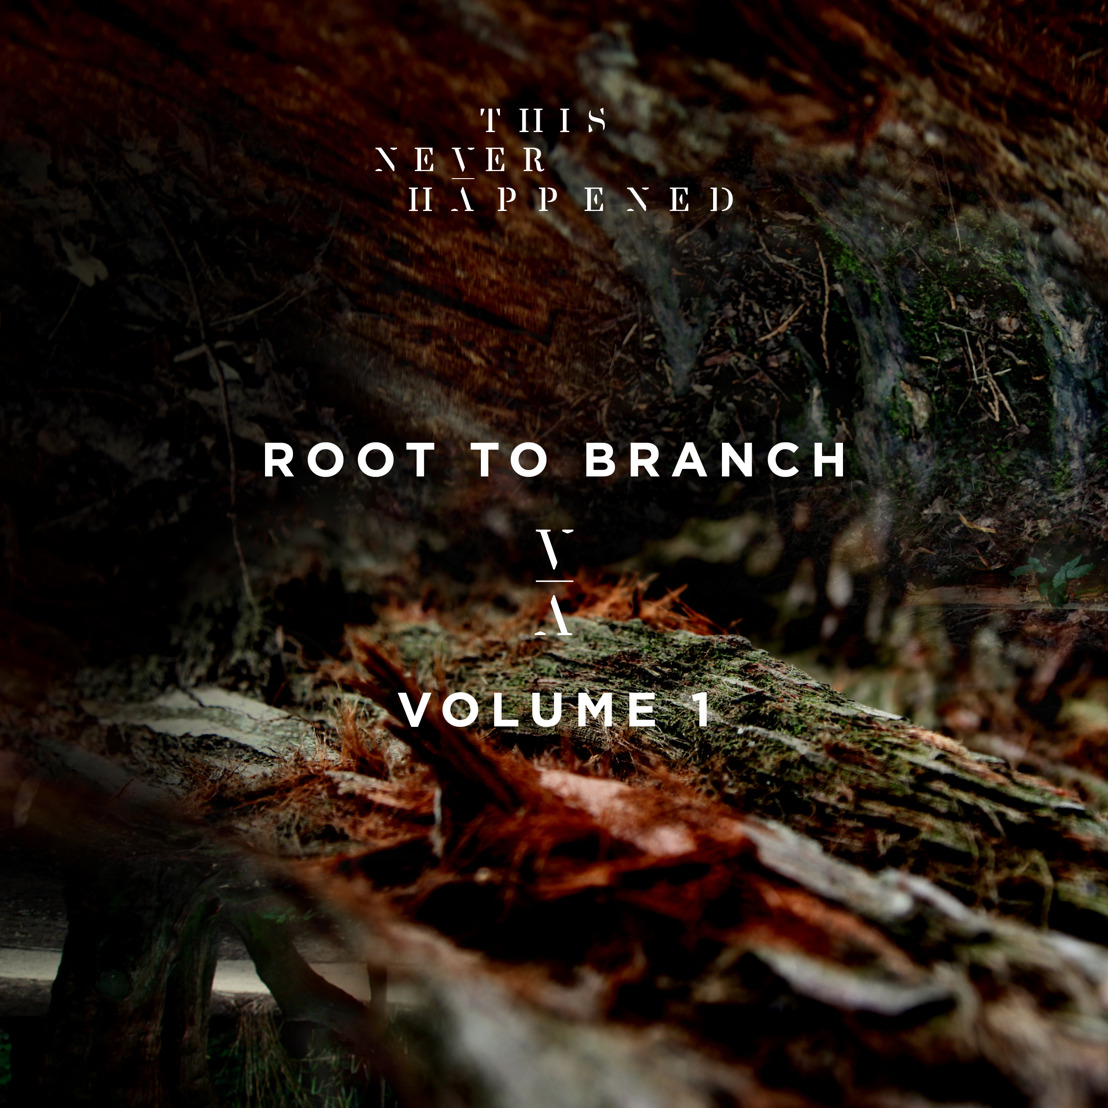 'This Never Happened' Announces 'Root To Branch, Volume 1'